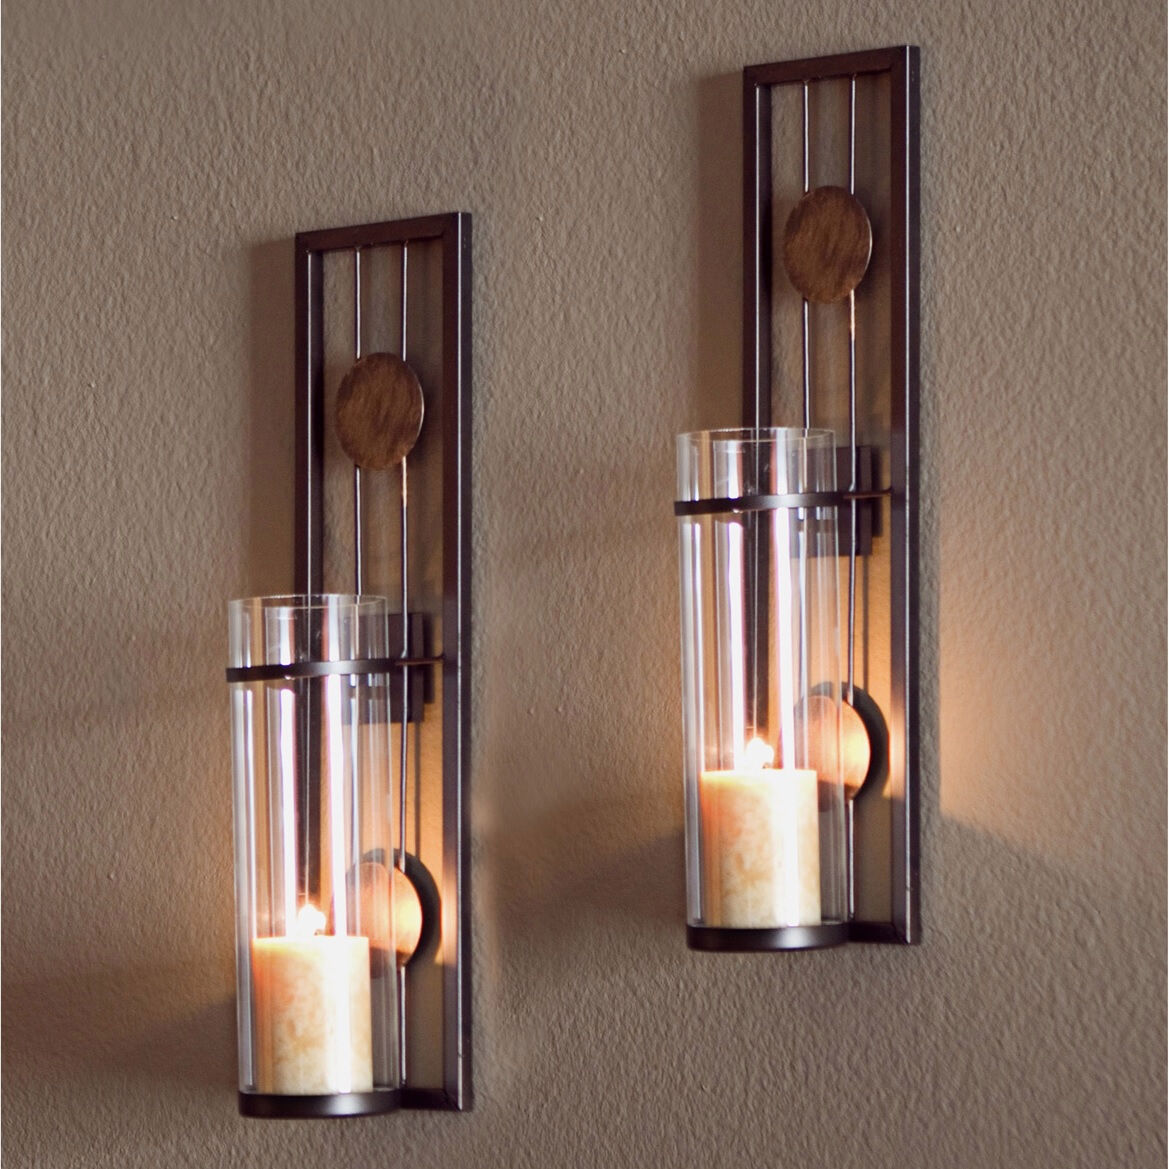 Glass Metal Wall Mounted Sconces 2 Pillar Candle Holders